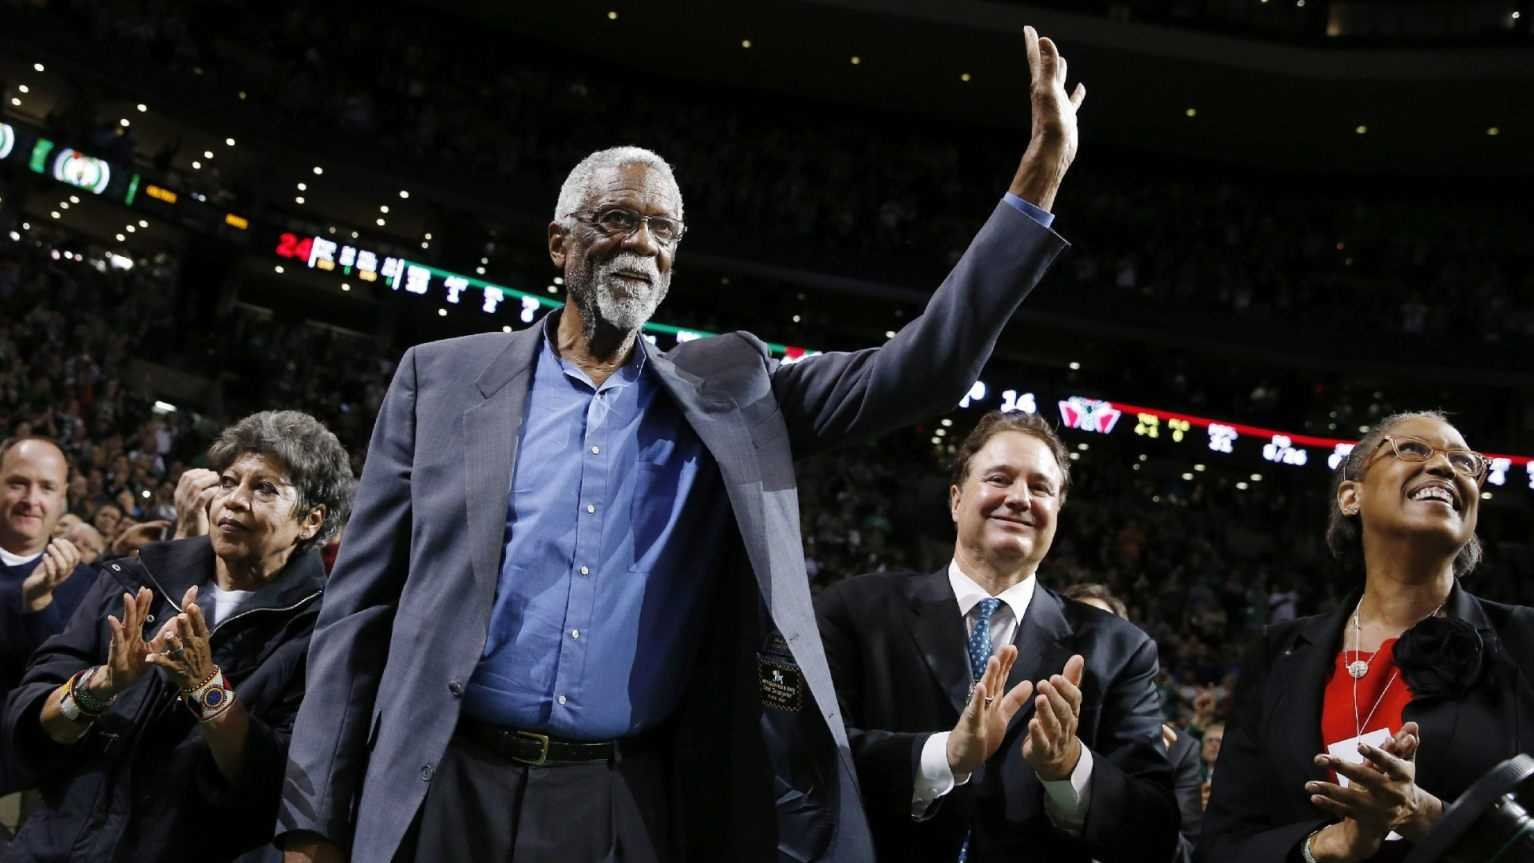 Bill Russell at NBA Celebration 0217.jpg